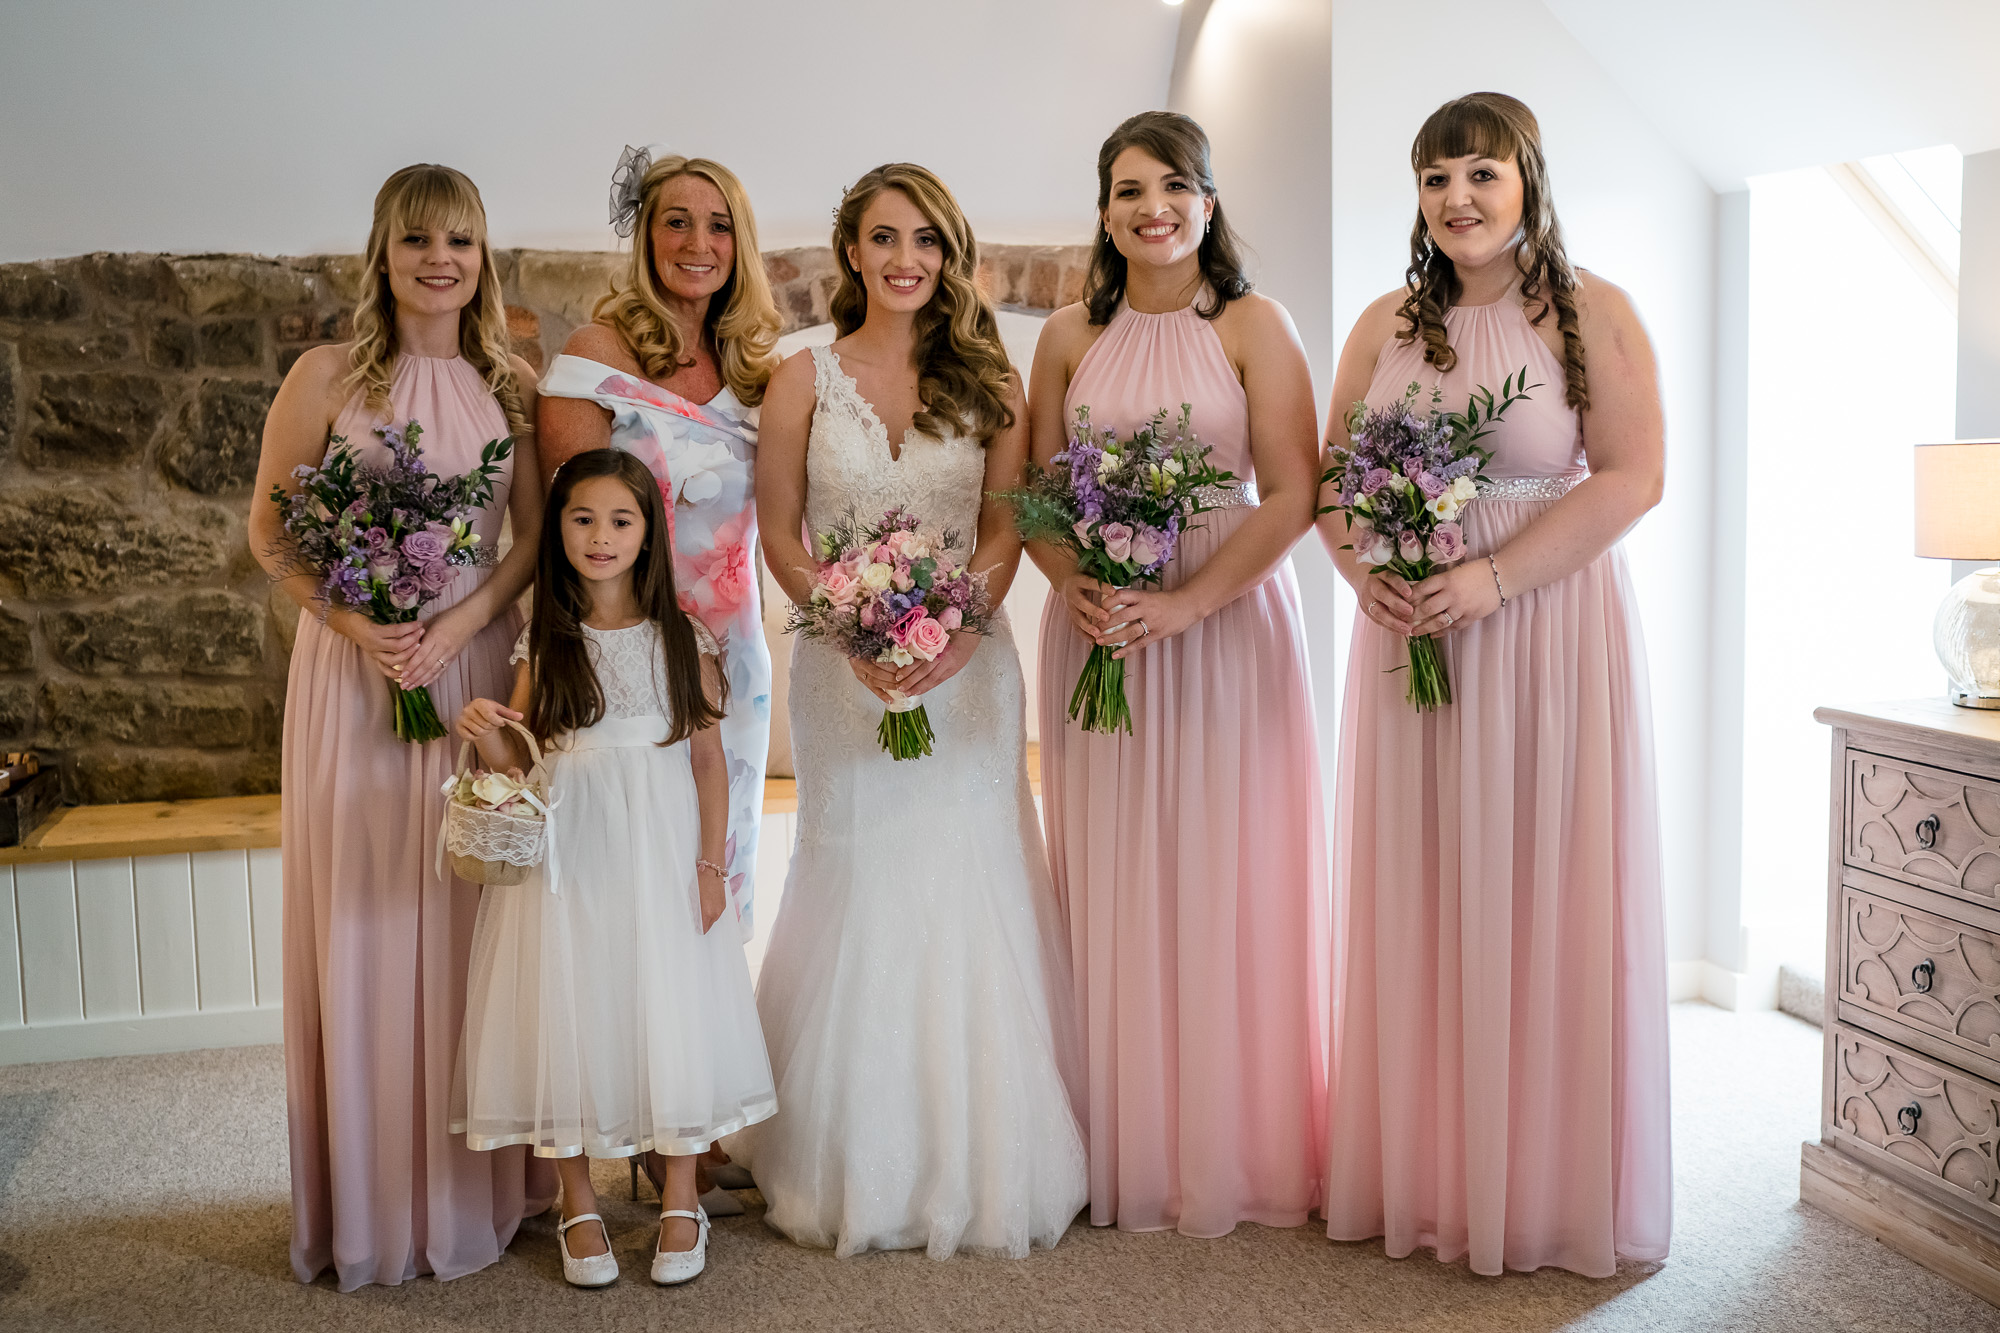 Tower Hill BArn Wedding Photographer based in north west england (15 of 35).jpg